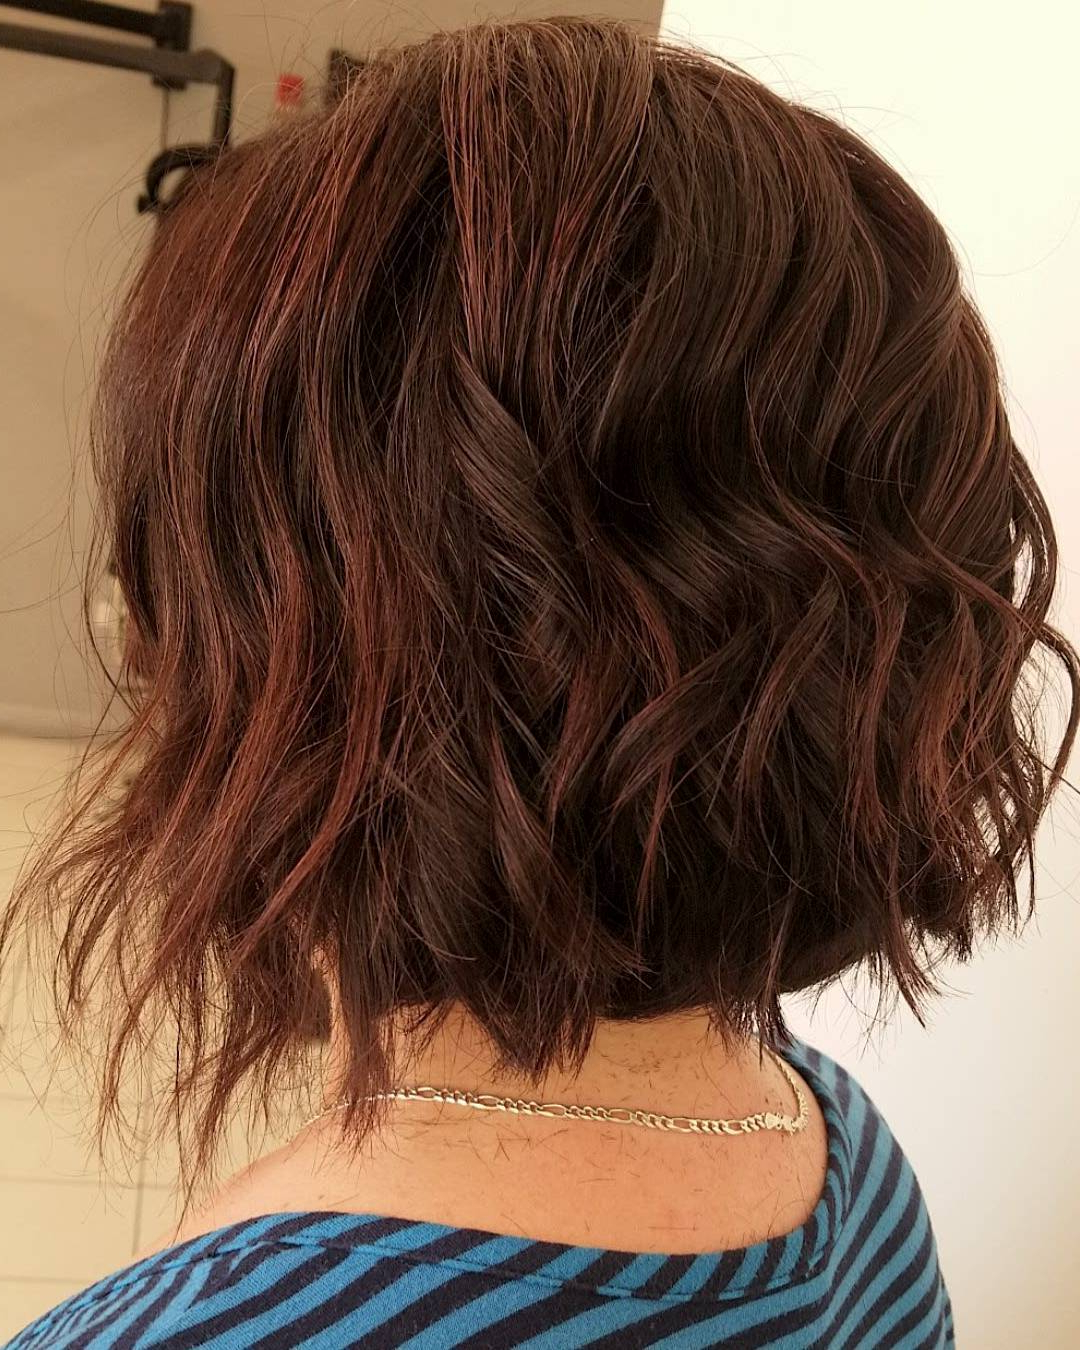 10 Modern Bob Haircuts For Well Groomed Women: Short Regarding Disconnected Shaggy Brunette Bob Hairstyles (View 2 of 20)